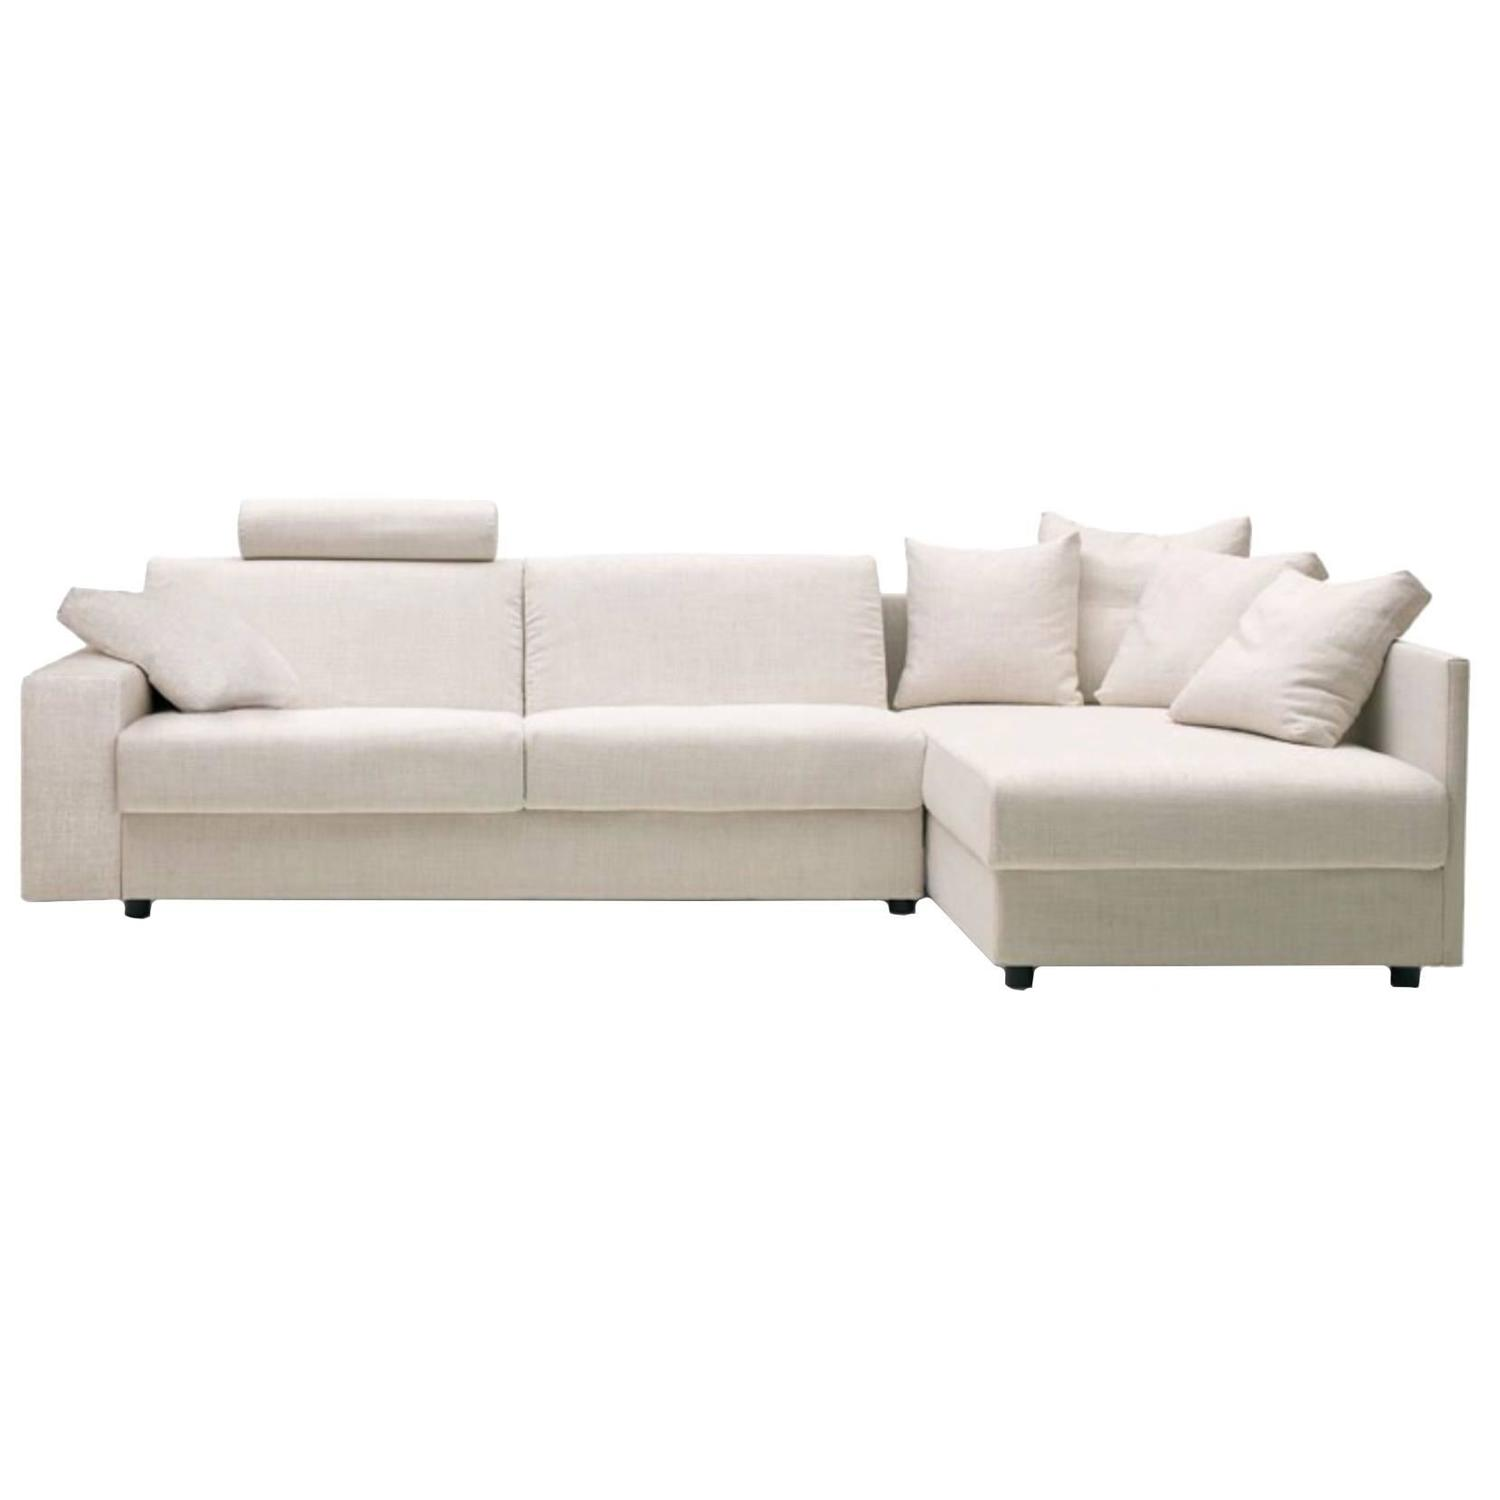 Modern Italian Sofa Bed Sectional SB41 Fabric New Made in Italy